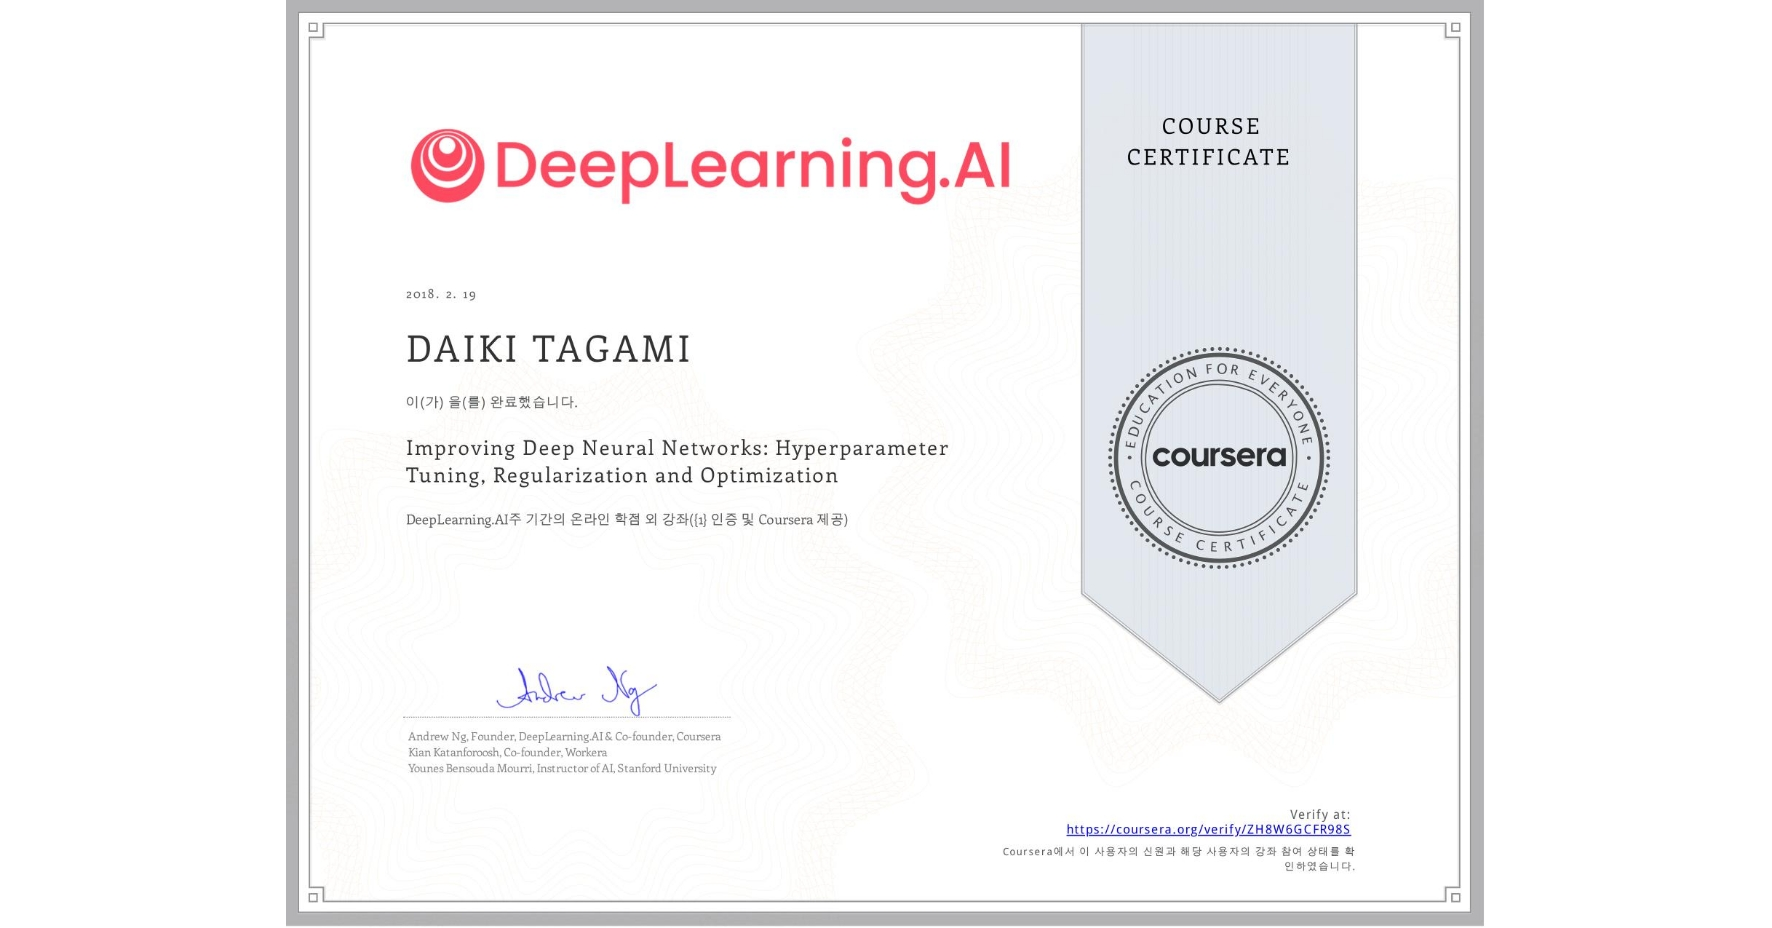 View certificate for DAIKI TAGAMI, Improving Deep Neural Networks: Hyperparameter Tuning, Regularization and Optimization, an online non-credit course authorized by DeepLearning.AI and offered through Coursera